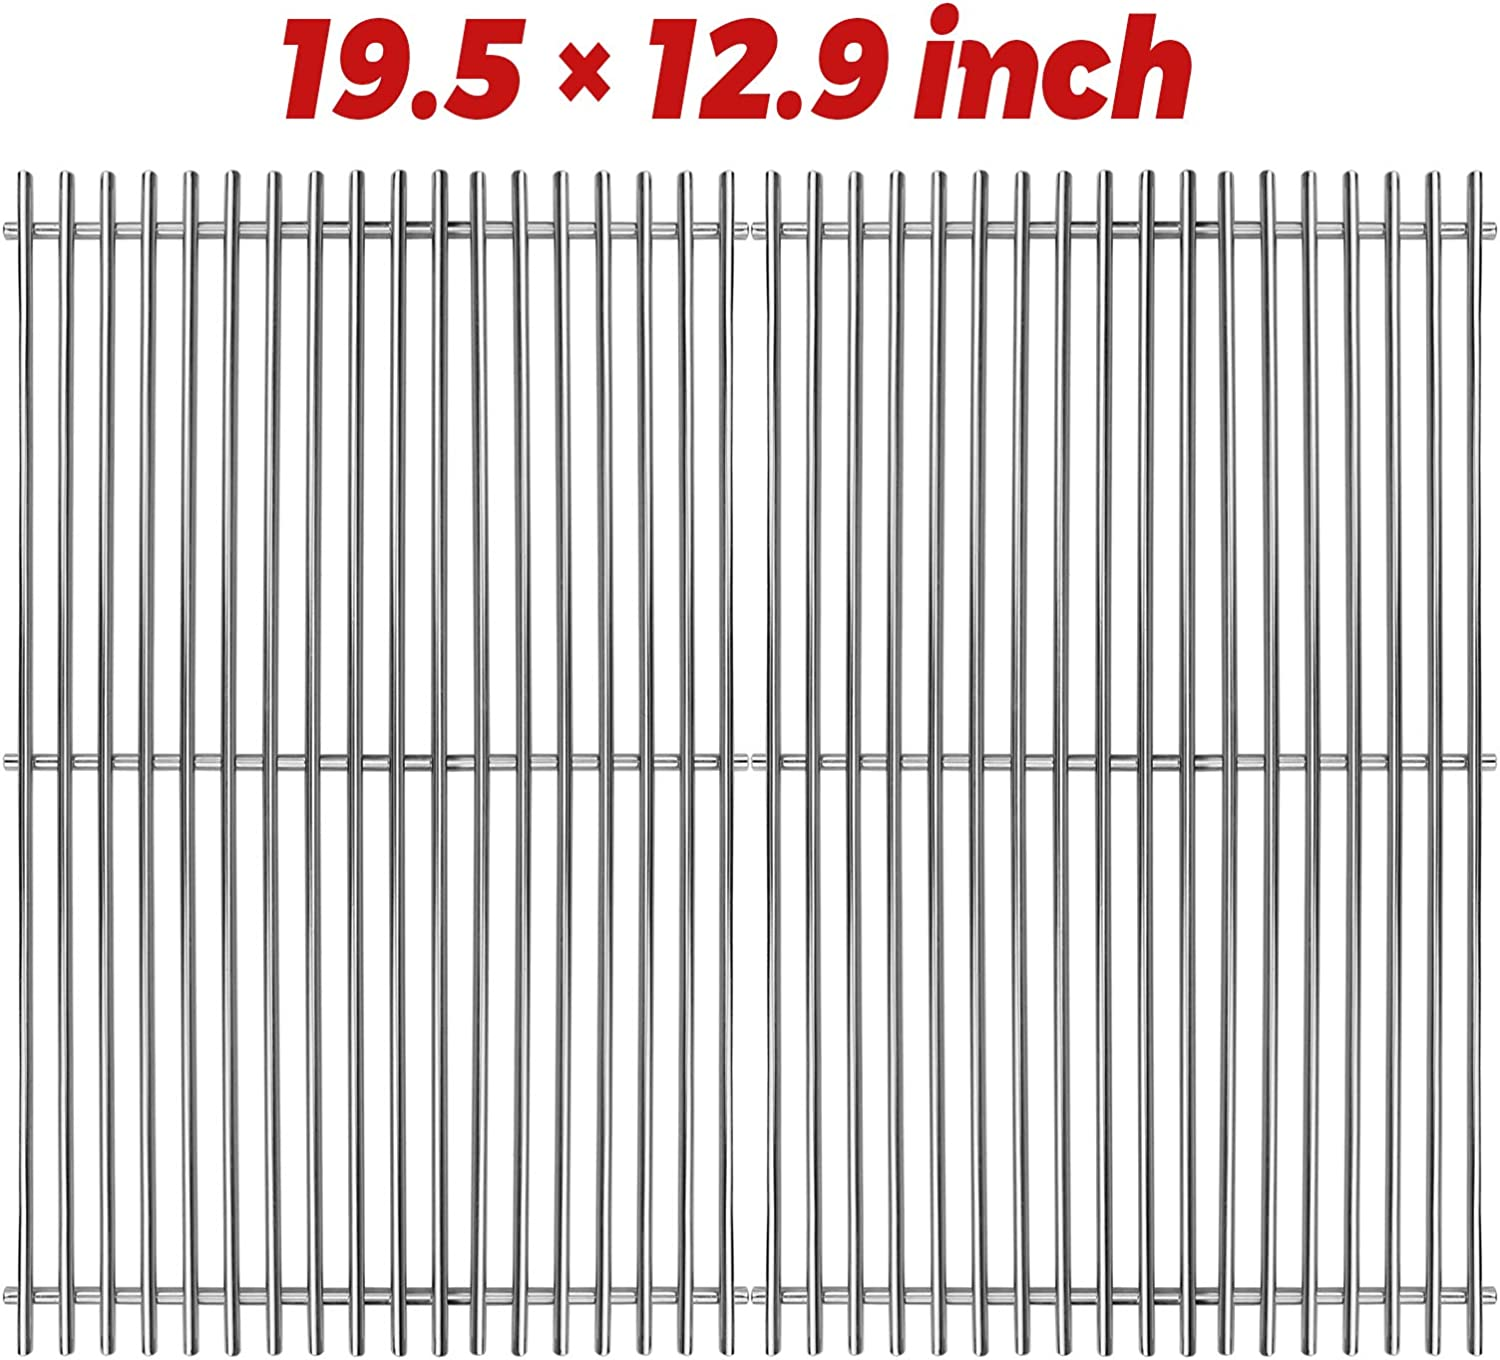 Utheer 7528 304 Stainless Steel Cooking Grid Grate (19.5 x 12.9 inch) for Weber Genesis E and S Series 300 E310 E320 S310 S320 Gas Grills, Weber Genesis Grill Replacement Parts